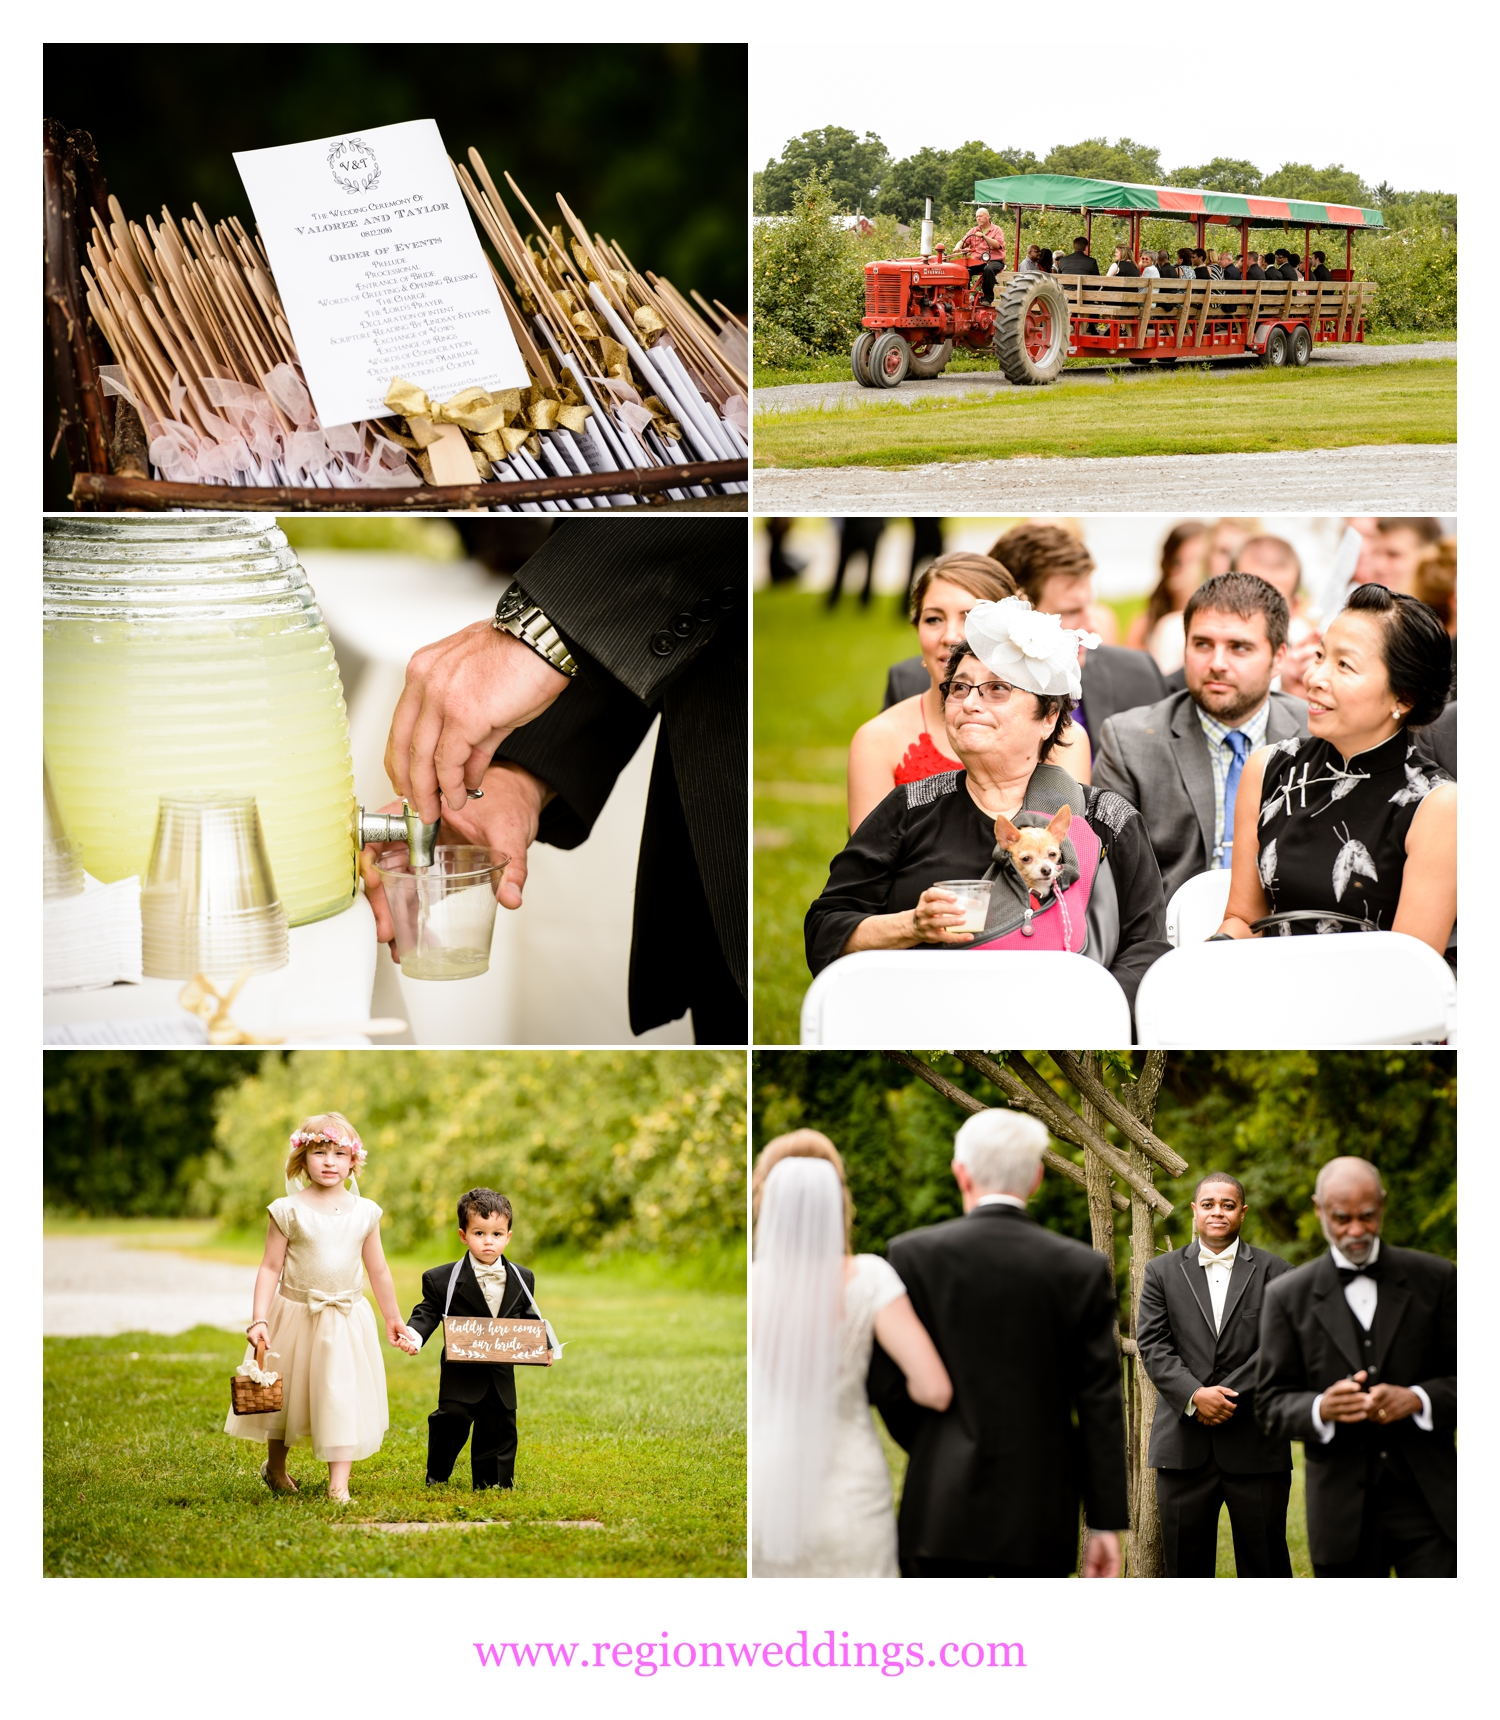 Wedding ceremony moments at County Line Orchard.